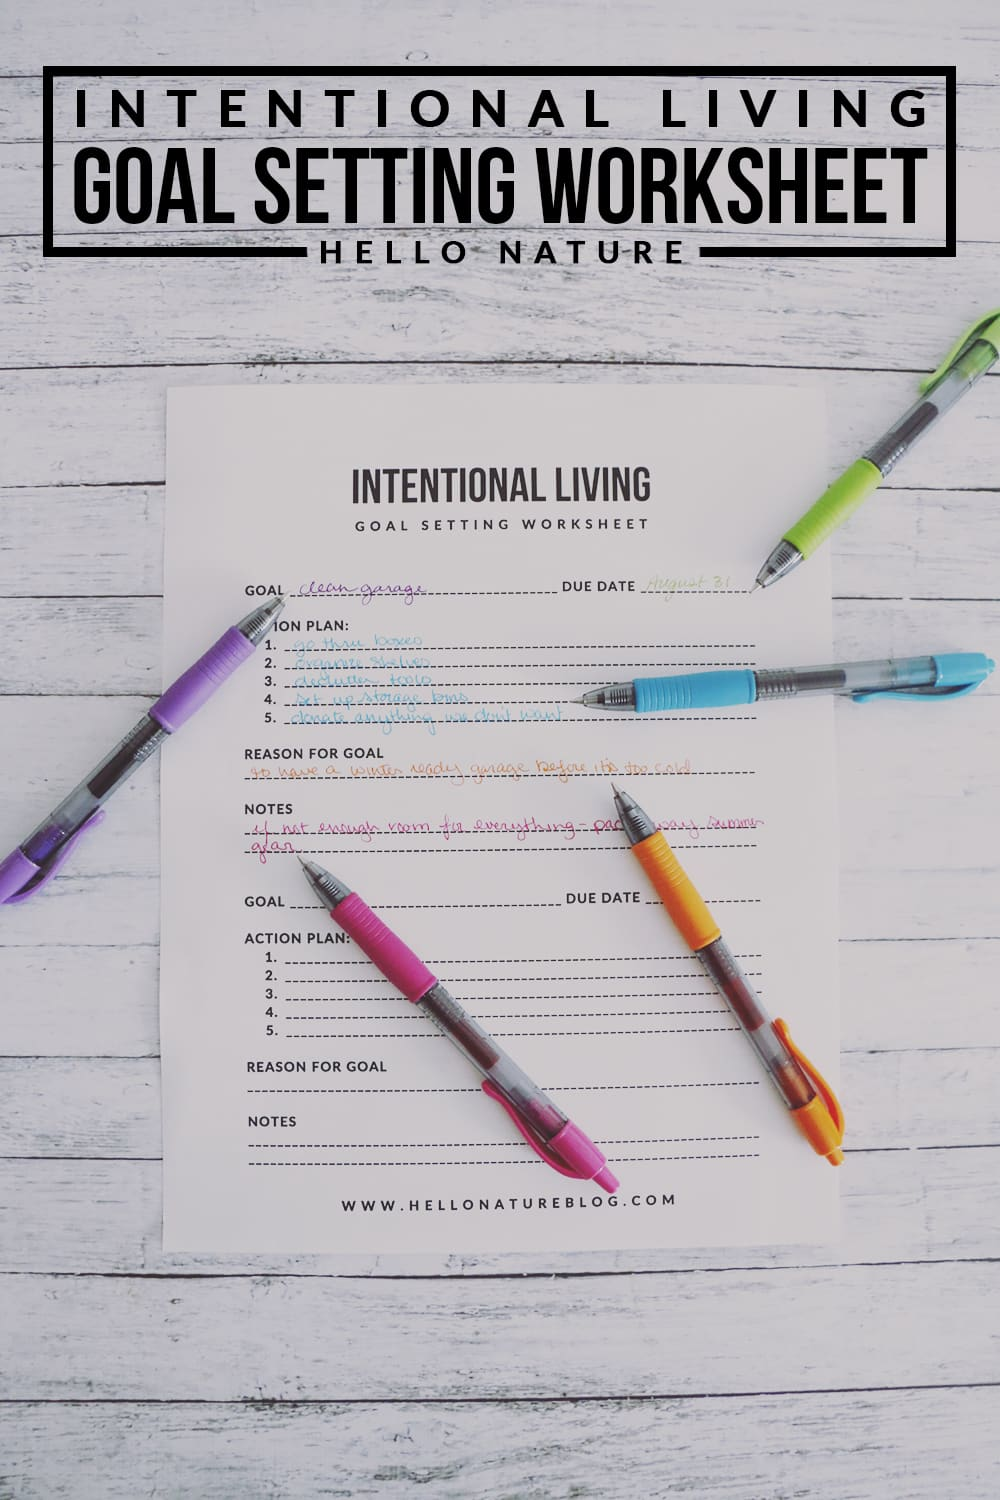 Intentional Living Goal Setting Worksheet Printable Hello Nature – Action Plan Worksheet